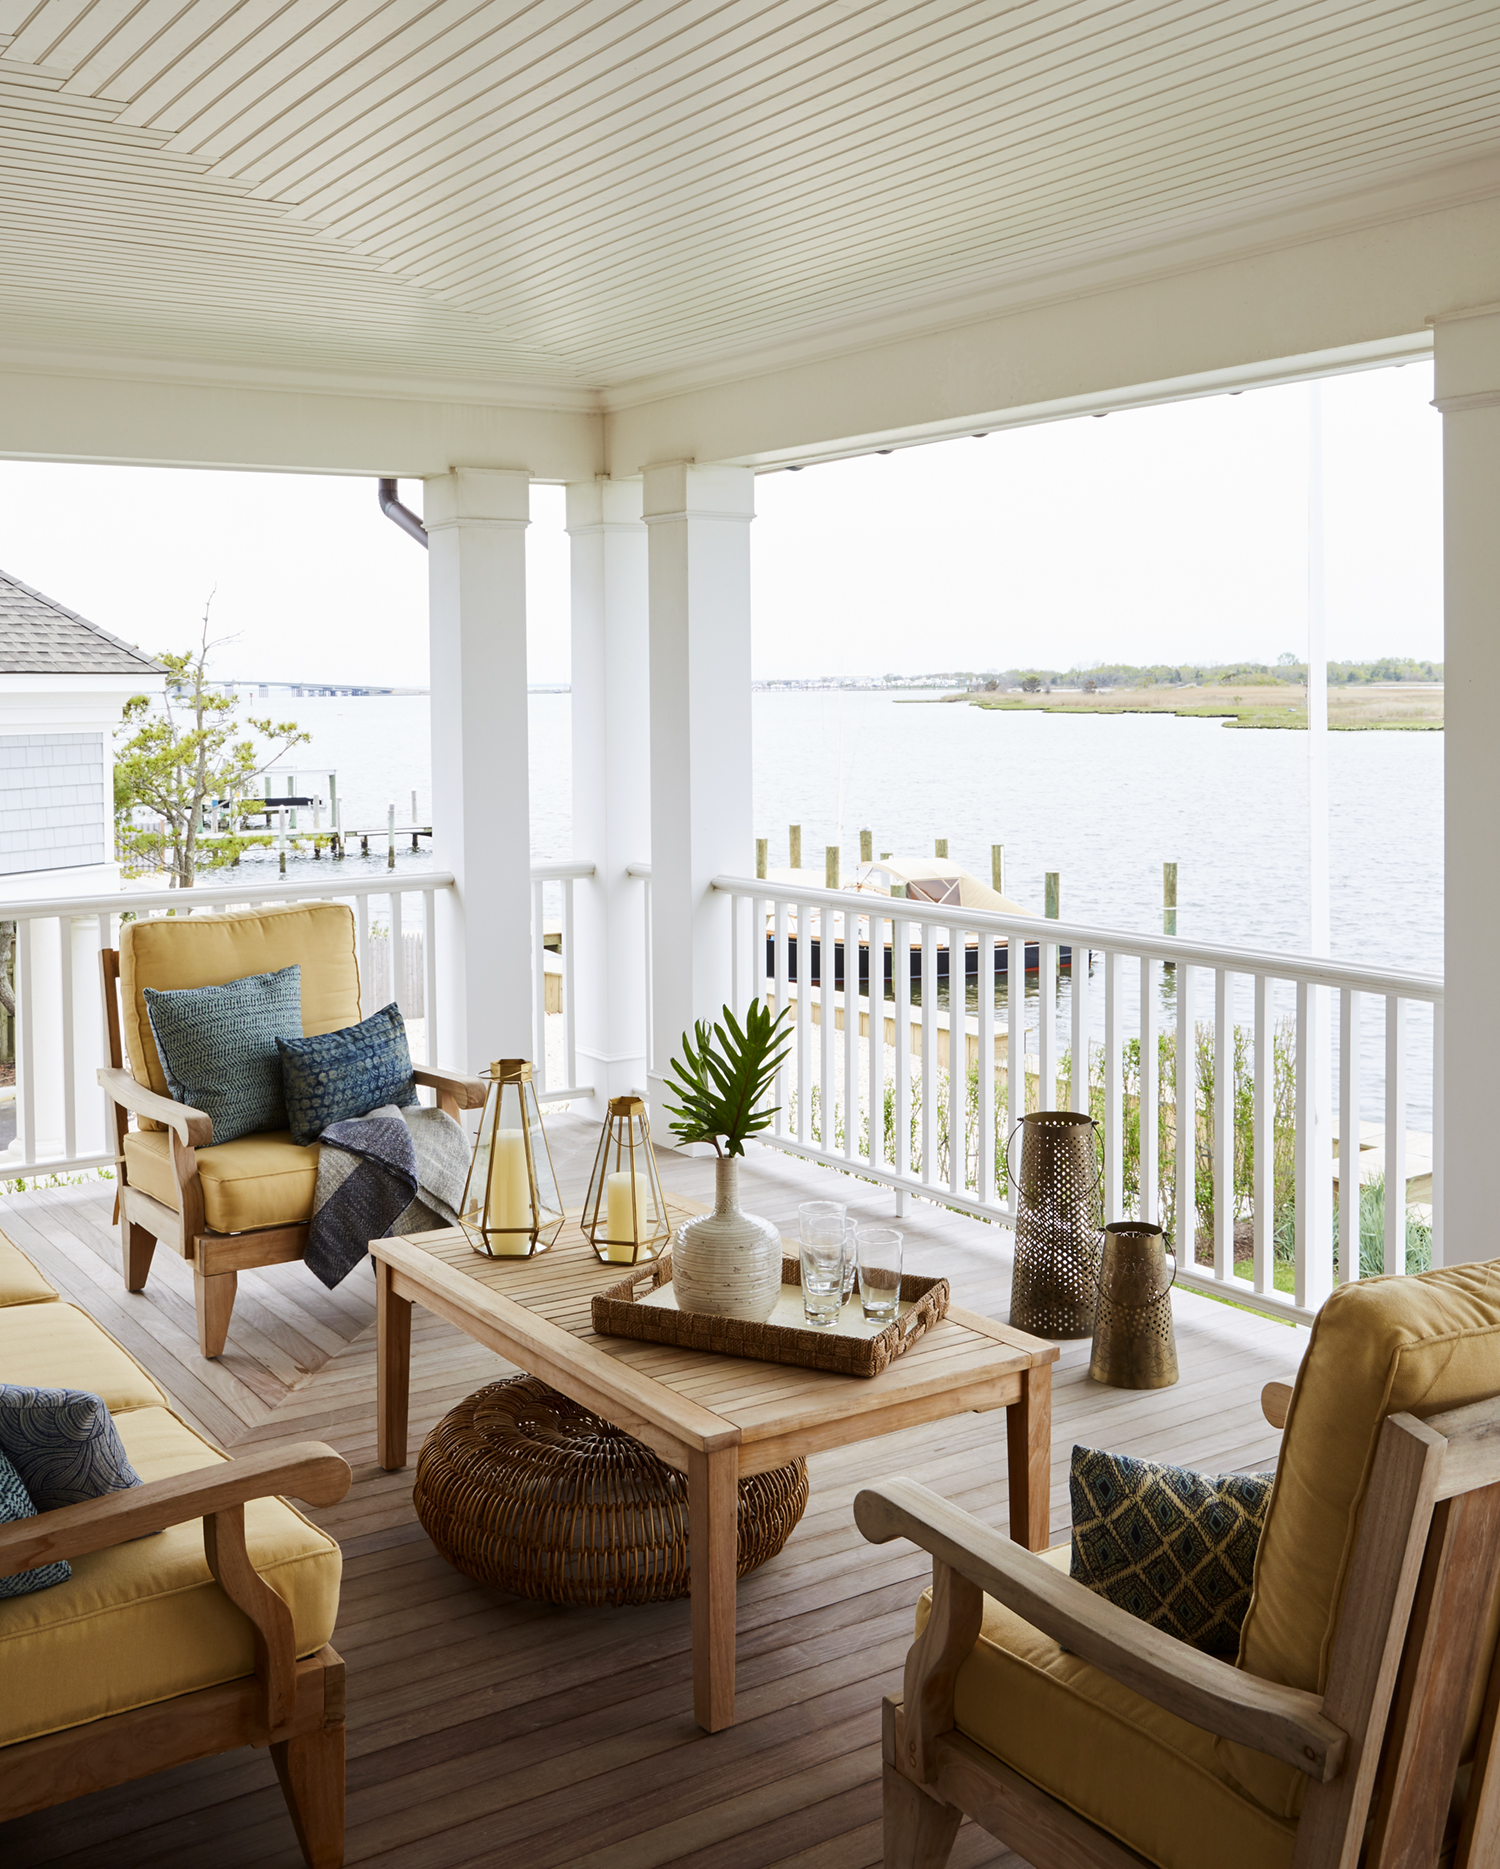 Bay front beach house in Mantoloking, New Jersey, by J. PATRYCE DESIGN